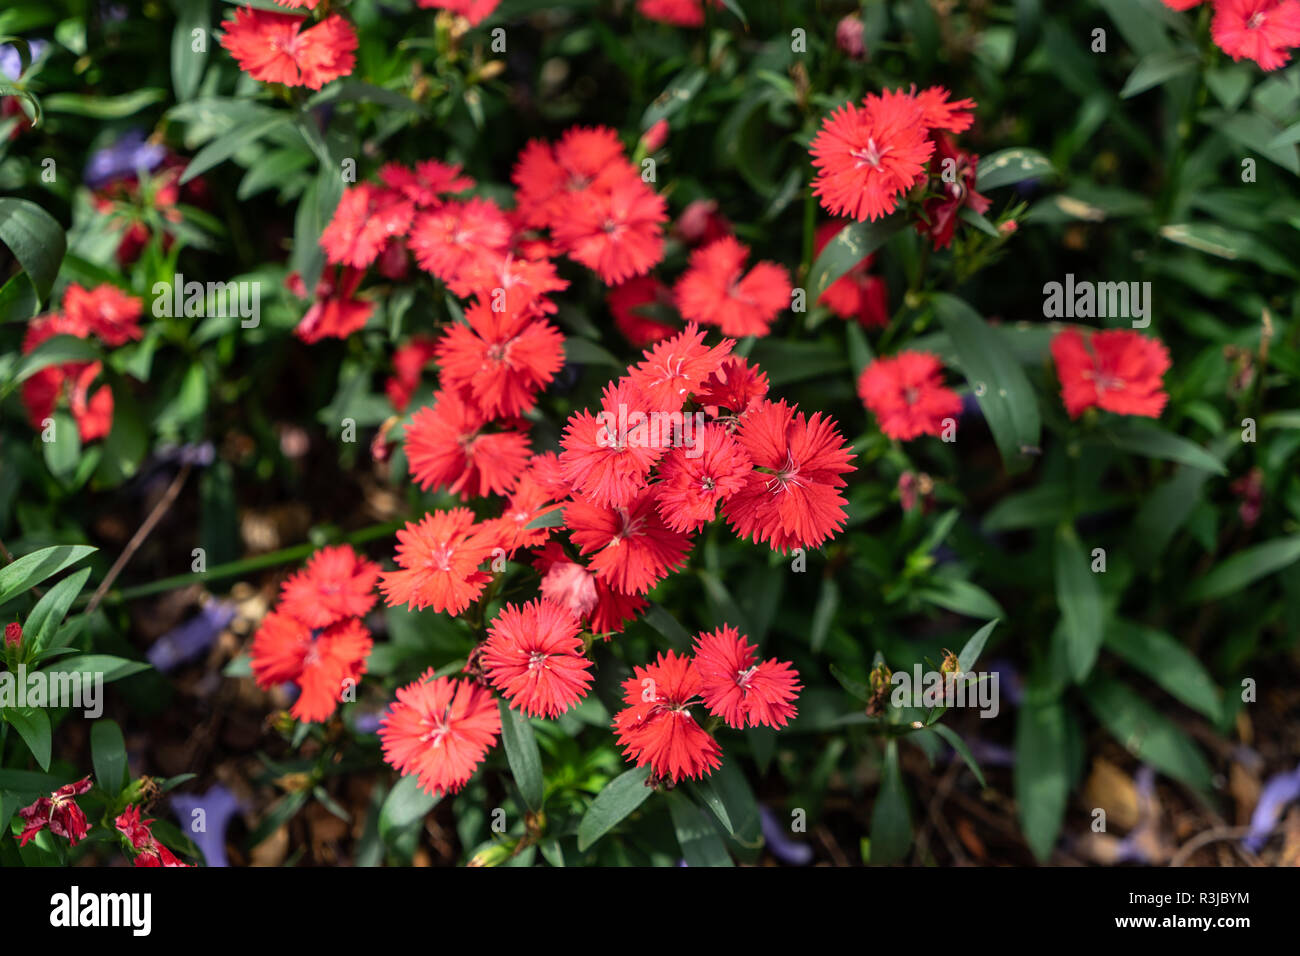 Dianthus Sweet Williams red flower - Stock Image